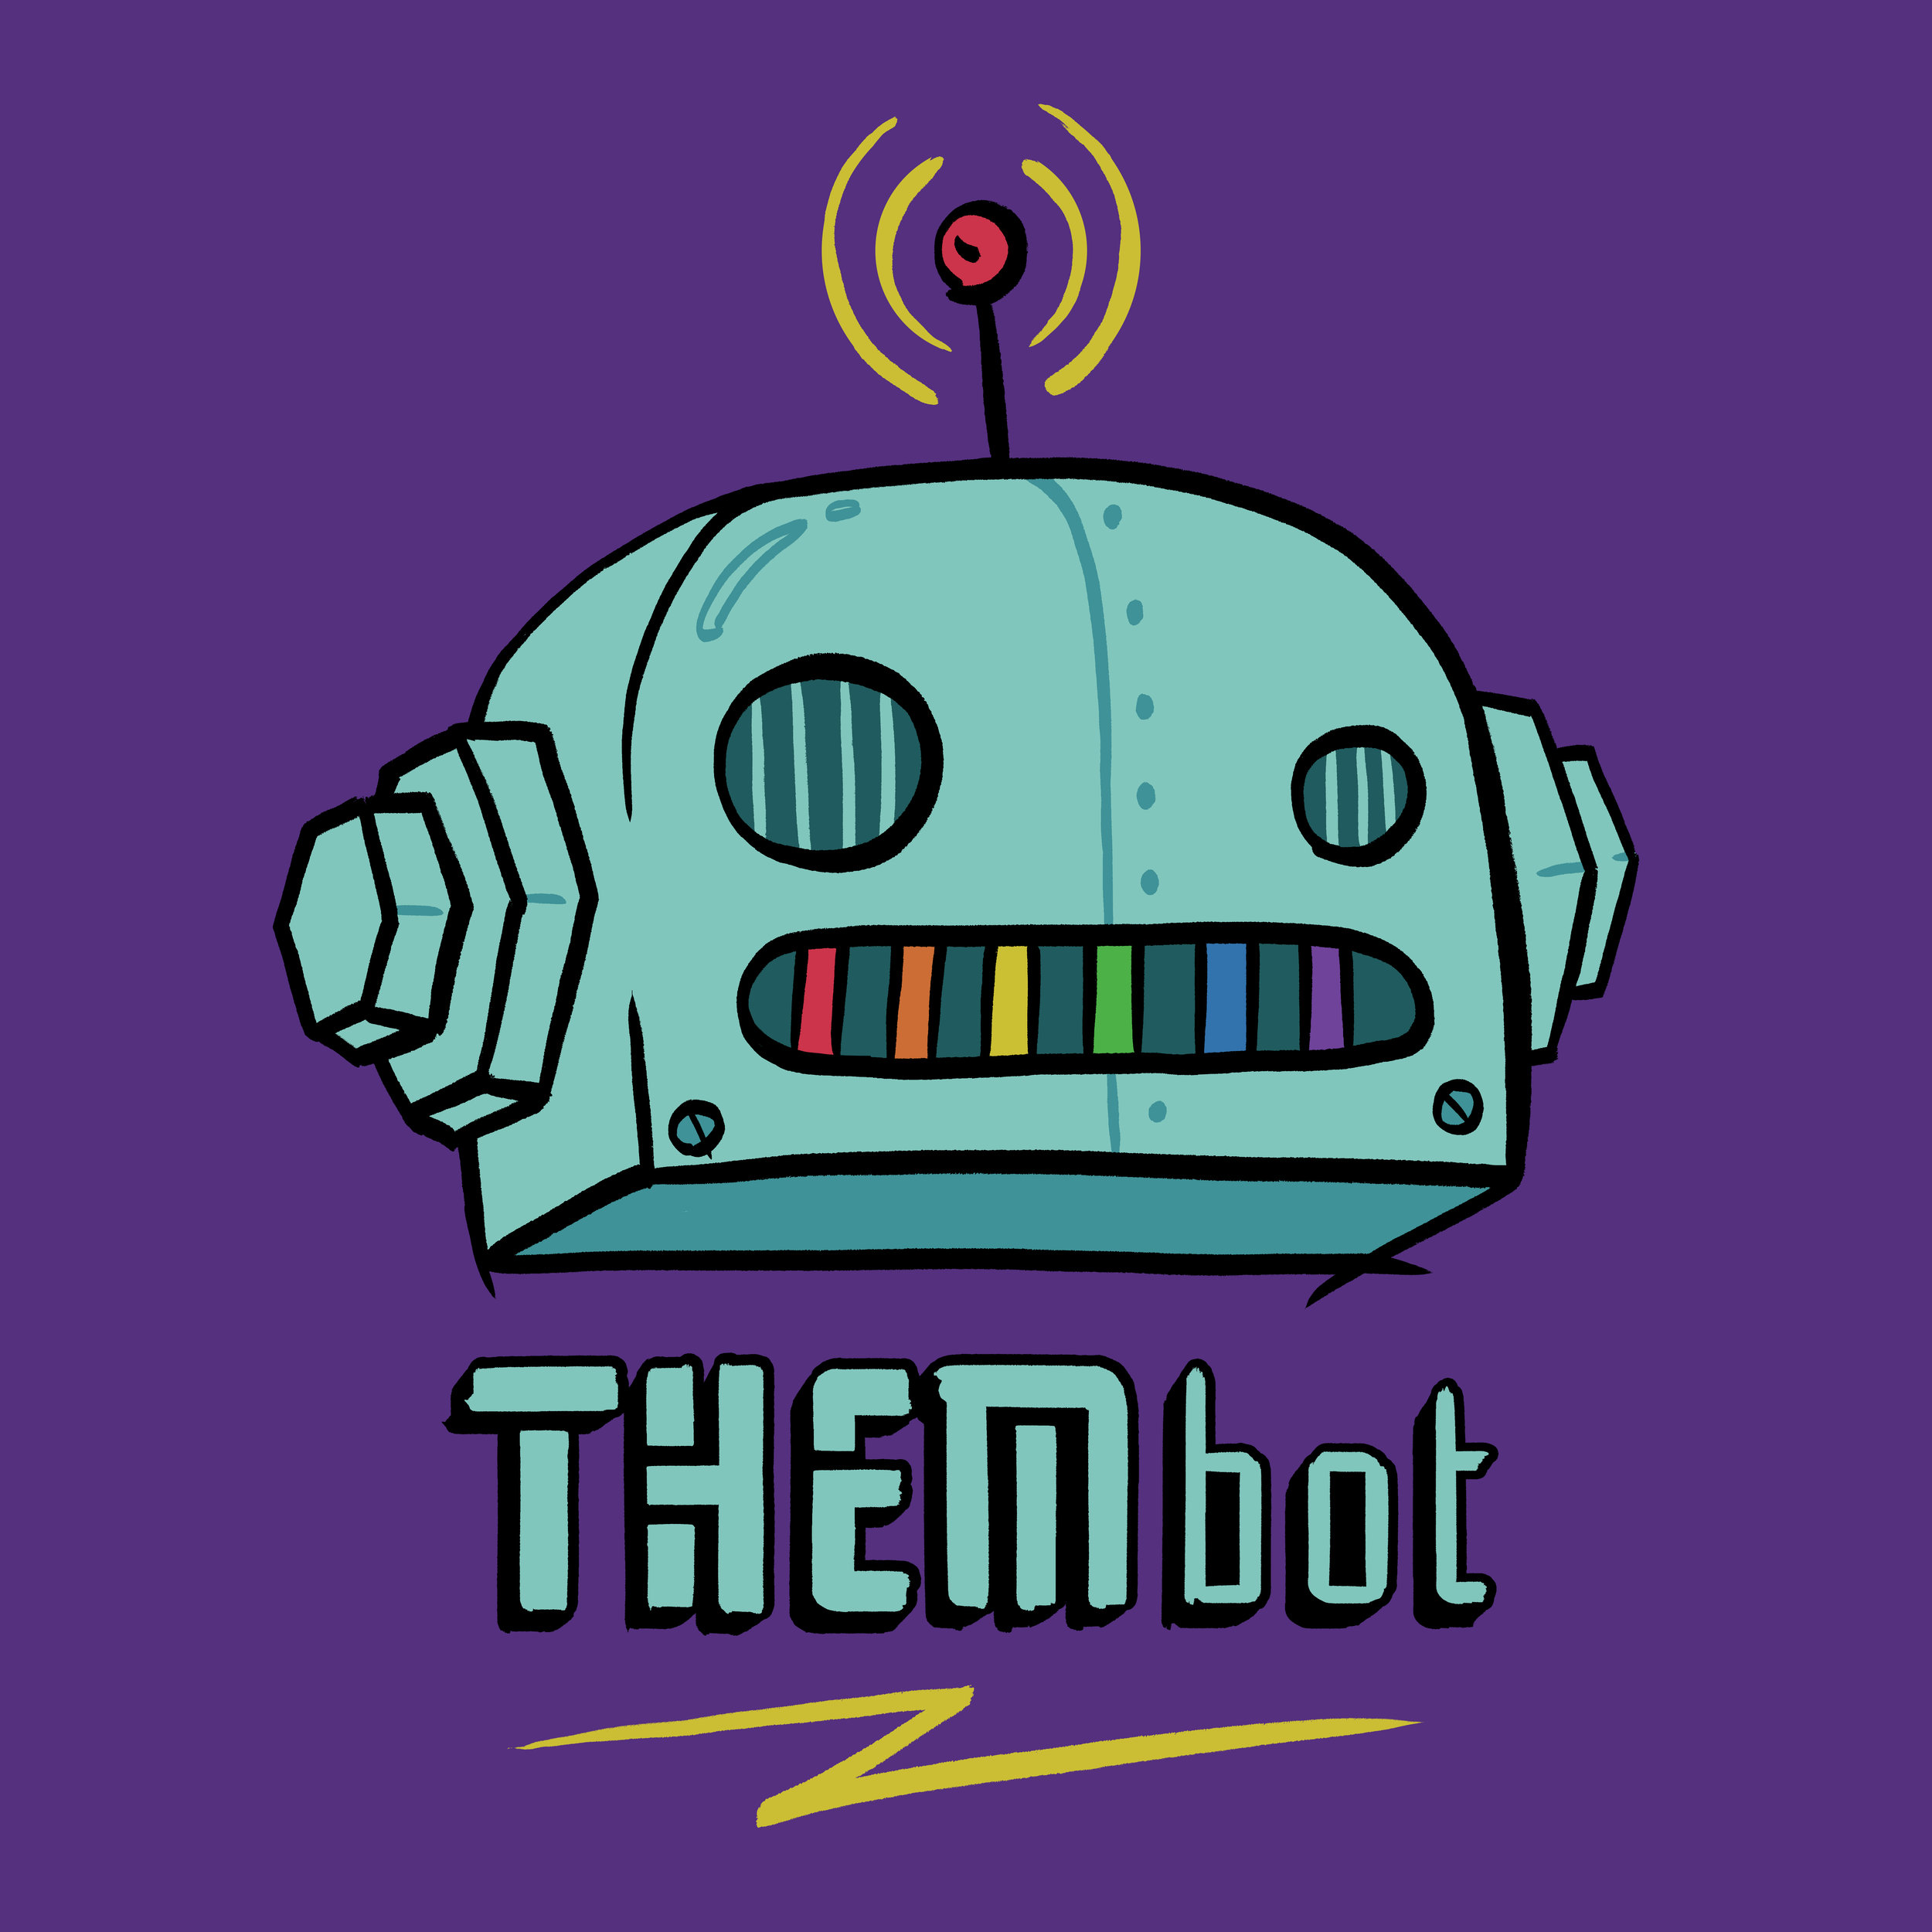 THembot - BRANDING | FREELANCEHot Rabbit/Bad Habit created a spin-off LGBTQ queer party.